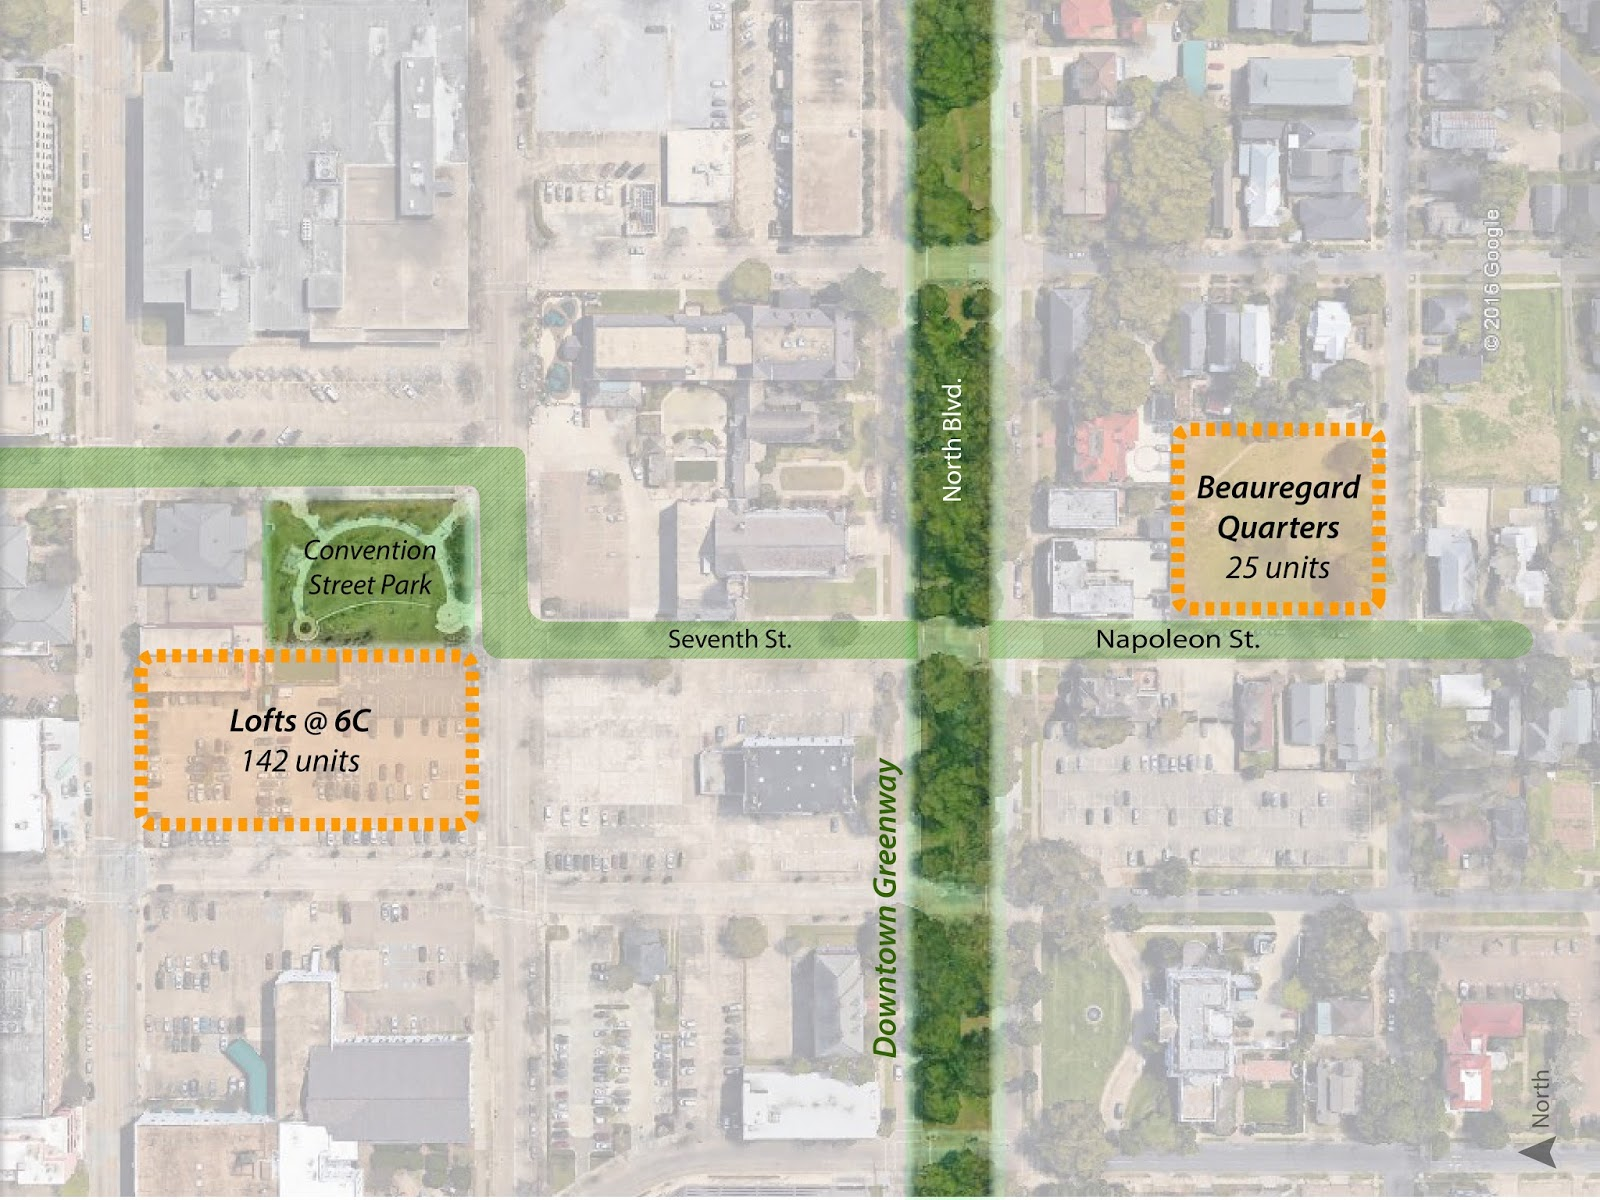 now that this connection has been highlighted we want to improve the experience for bikers and pedestrians from spanishtown to beauregard